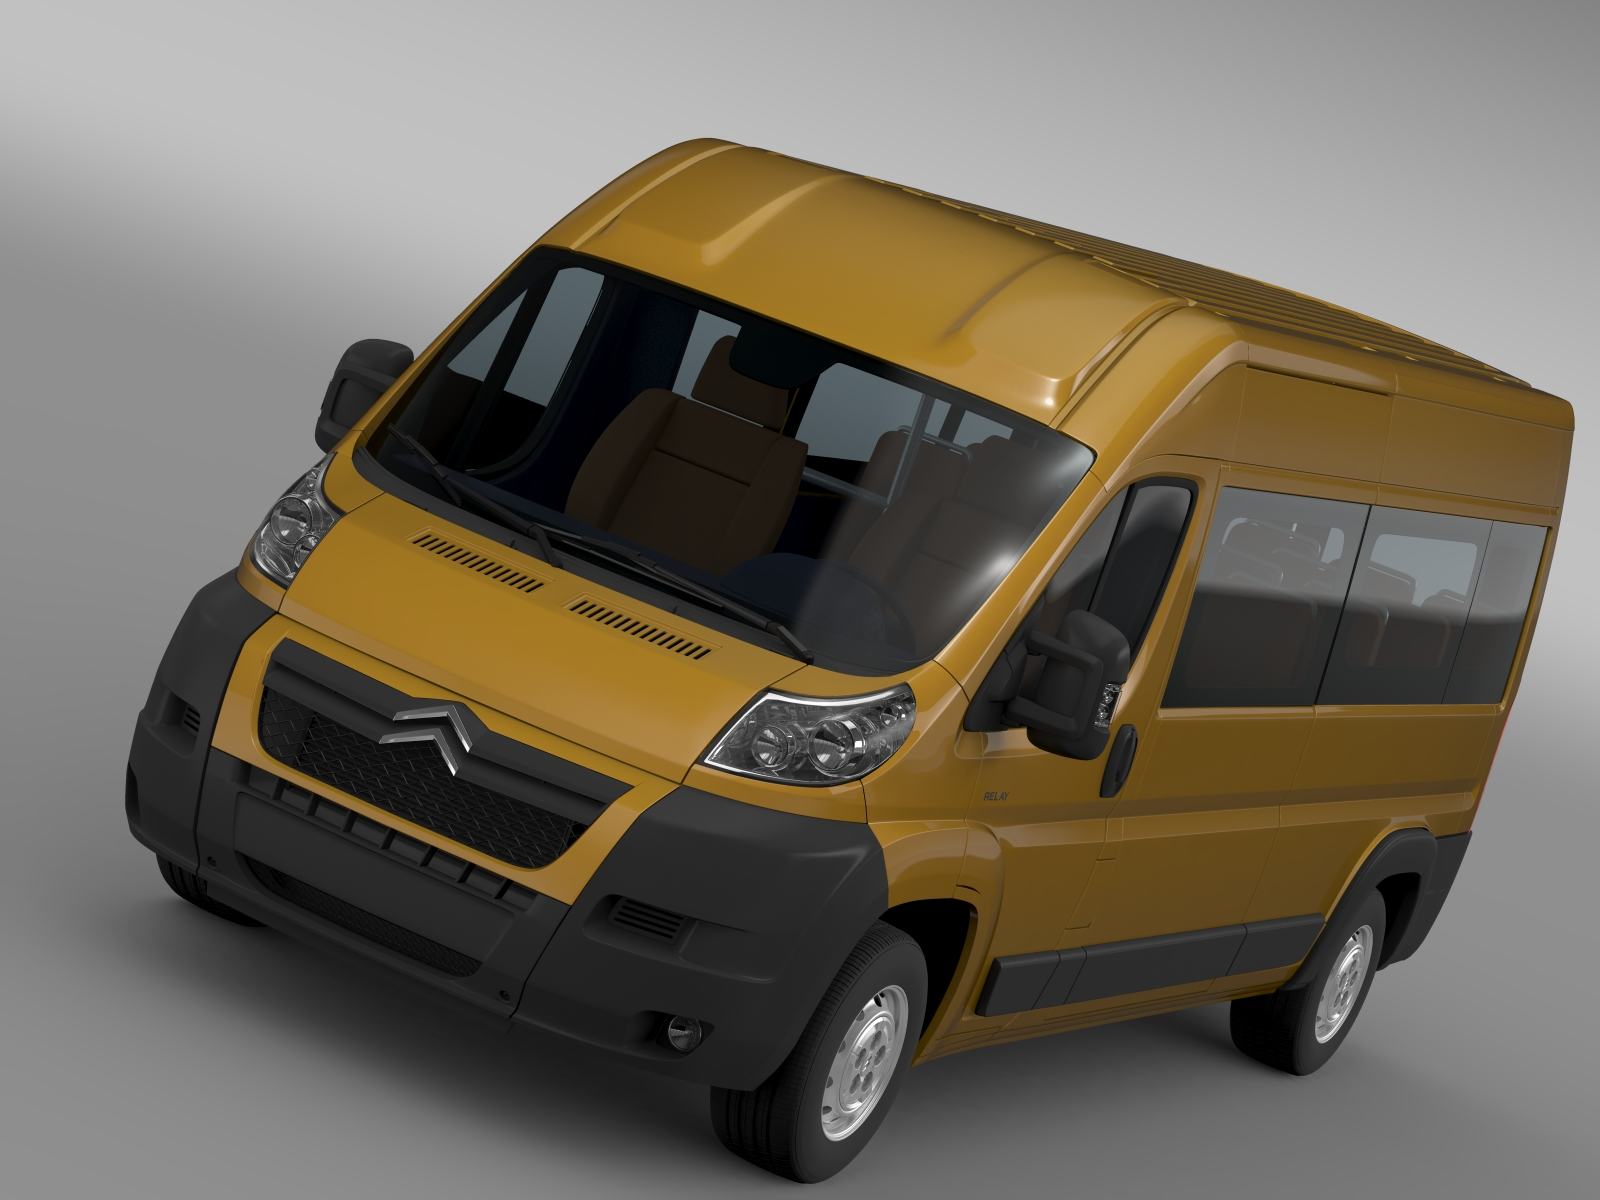 citroen relay window van l3h2 2006-2014 3d model 3ds max fbx c4d lwo ma mb hrc xsi obj 210090